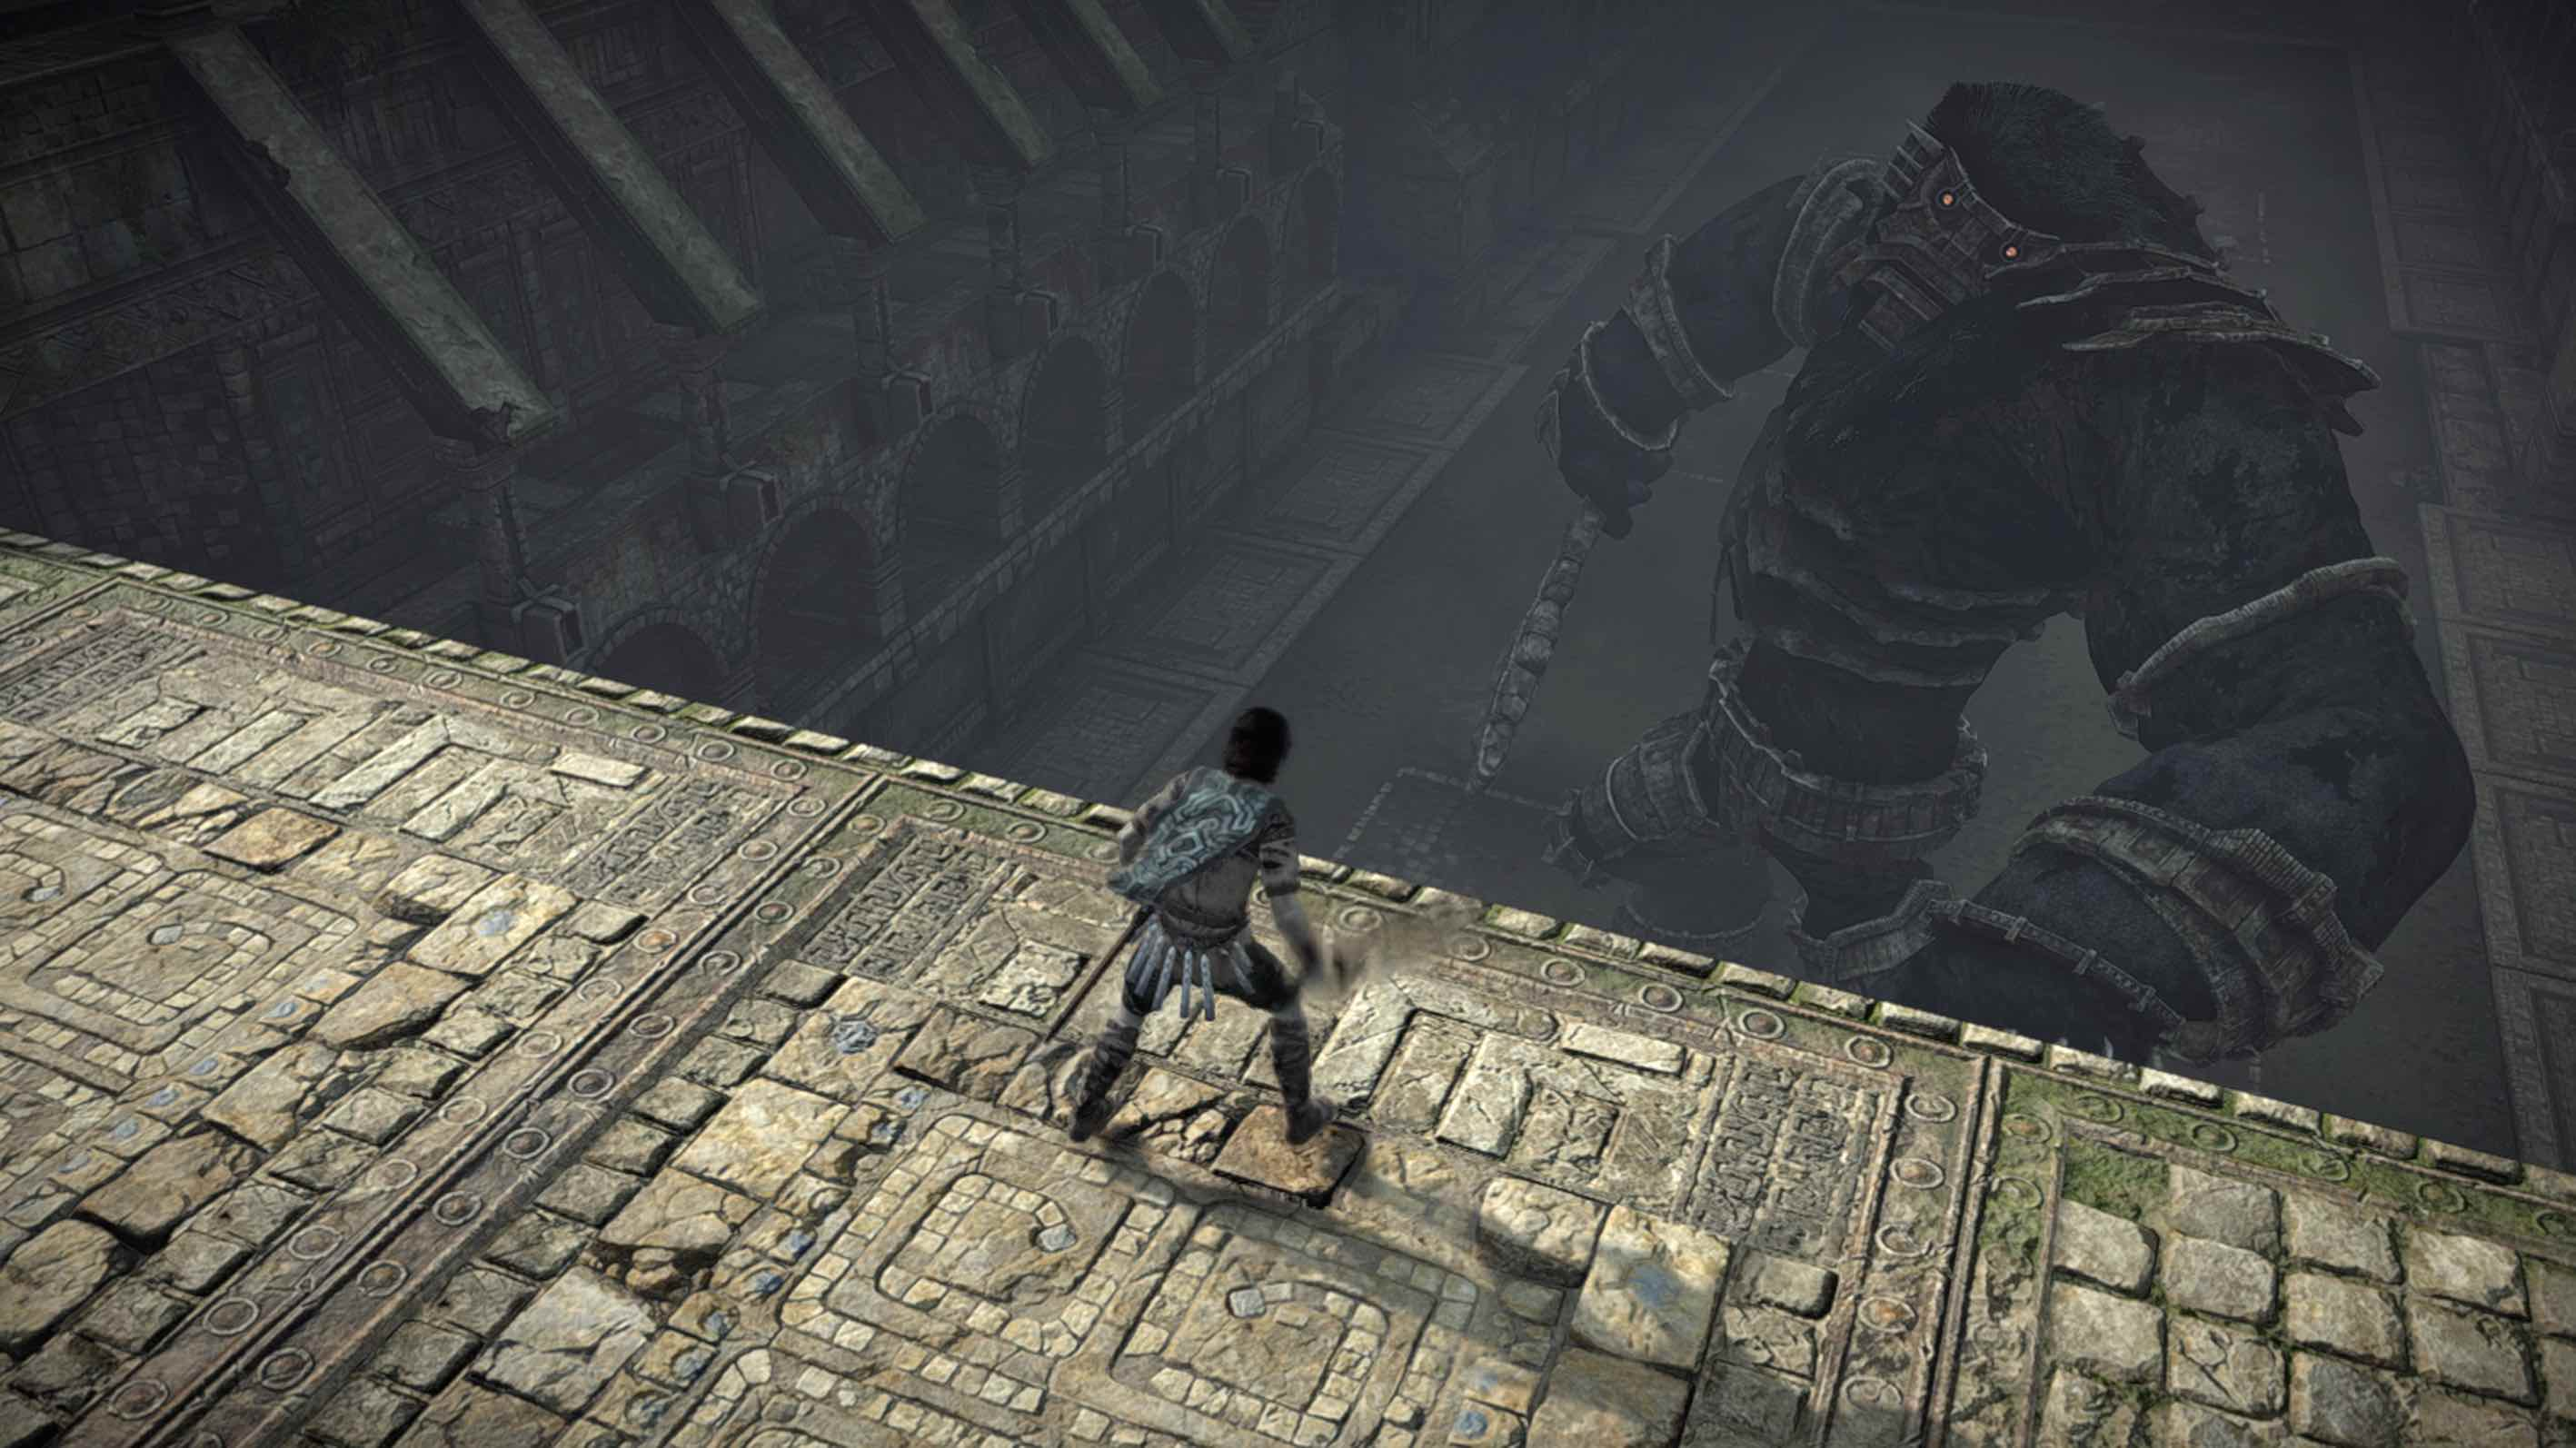 Shadow_of_the_Colossus_Coloso_15_4